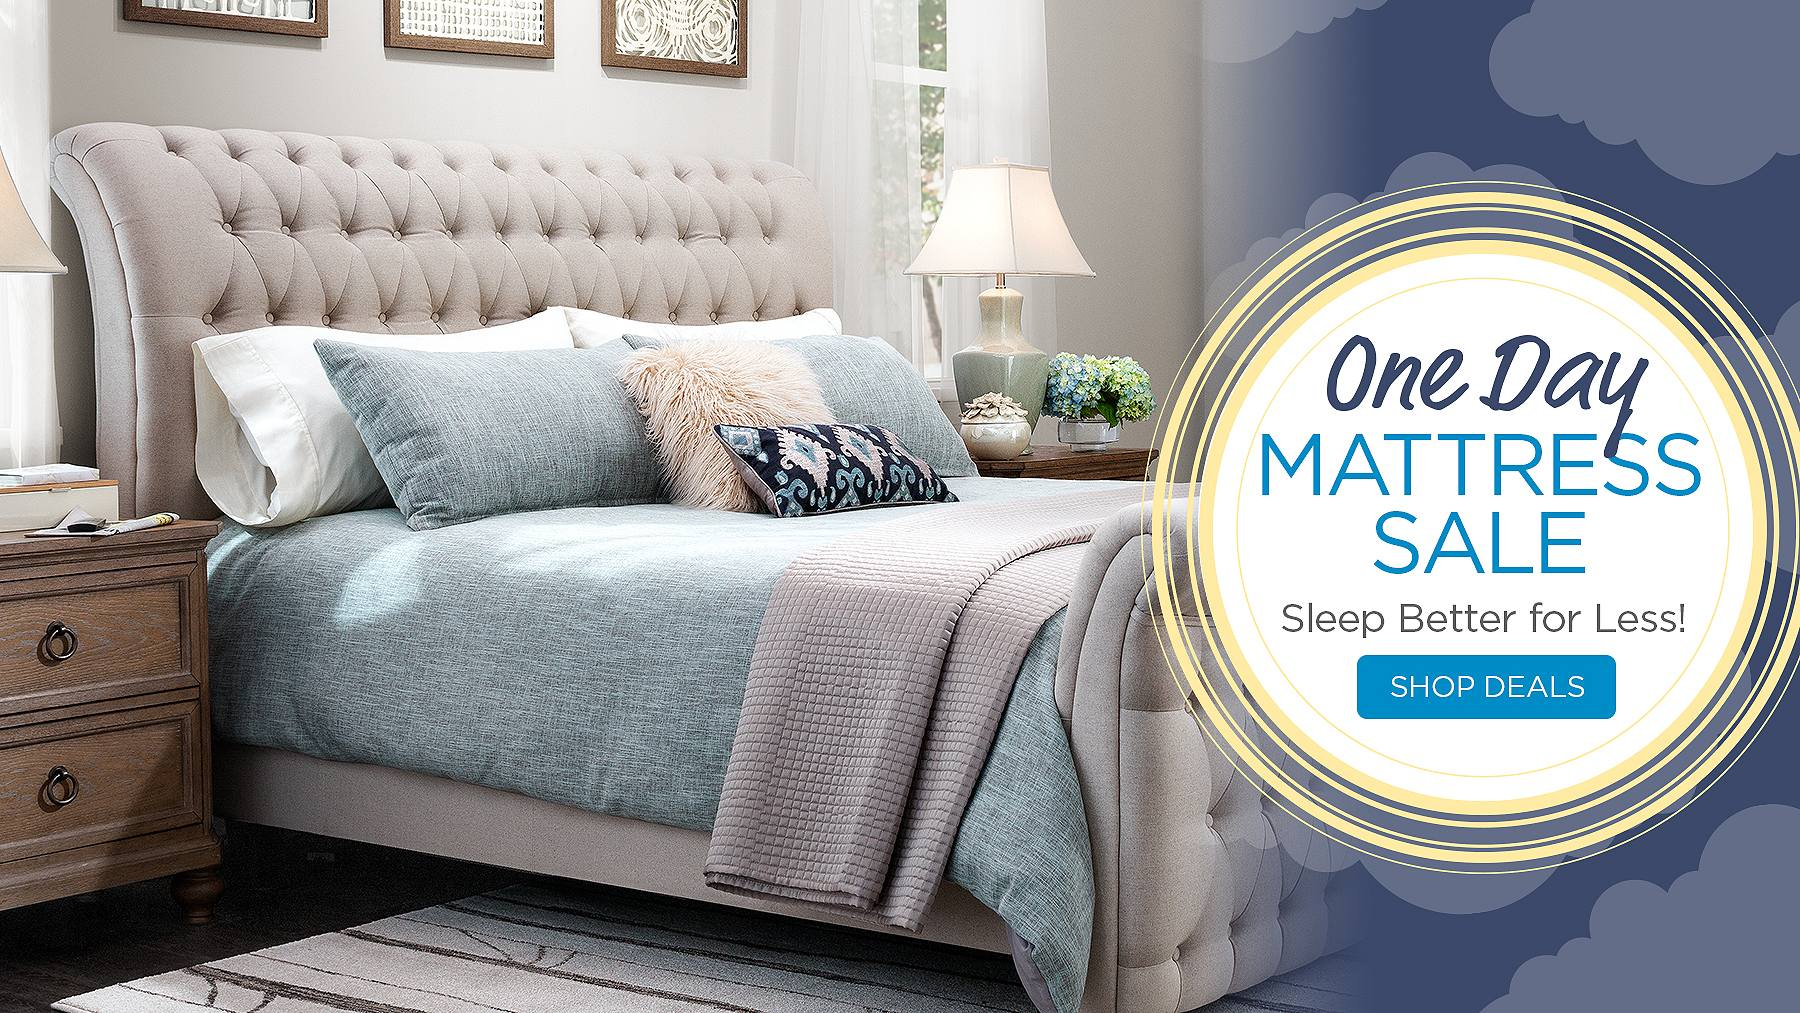 Shop One Day Mattress Sale